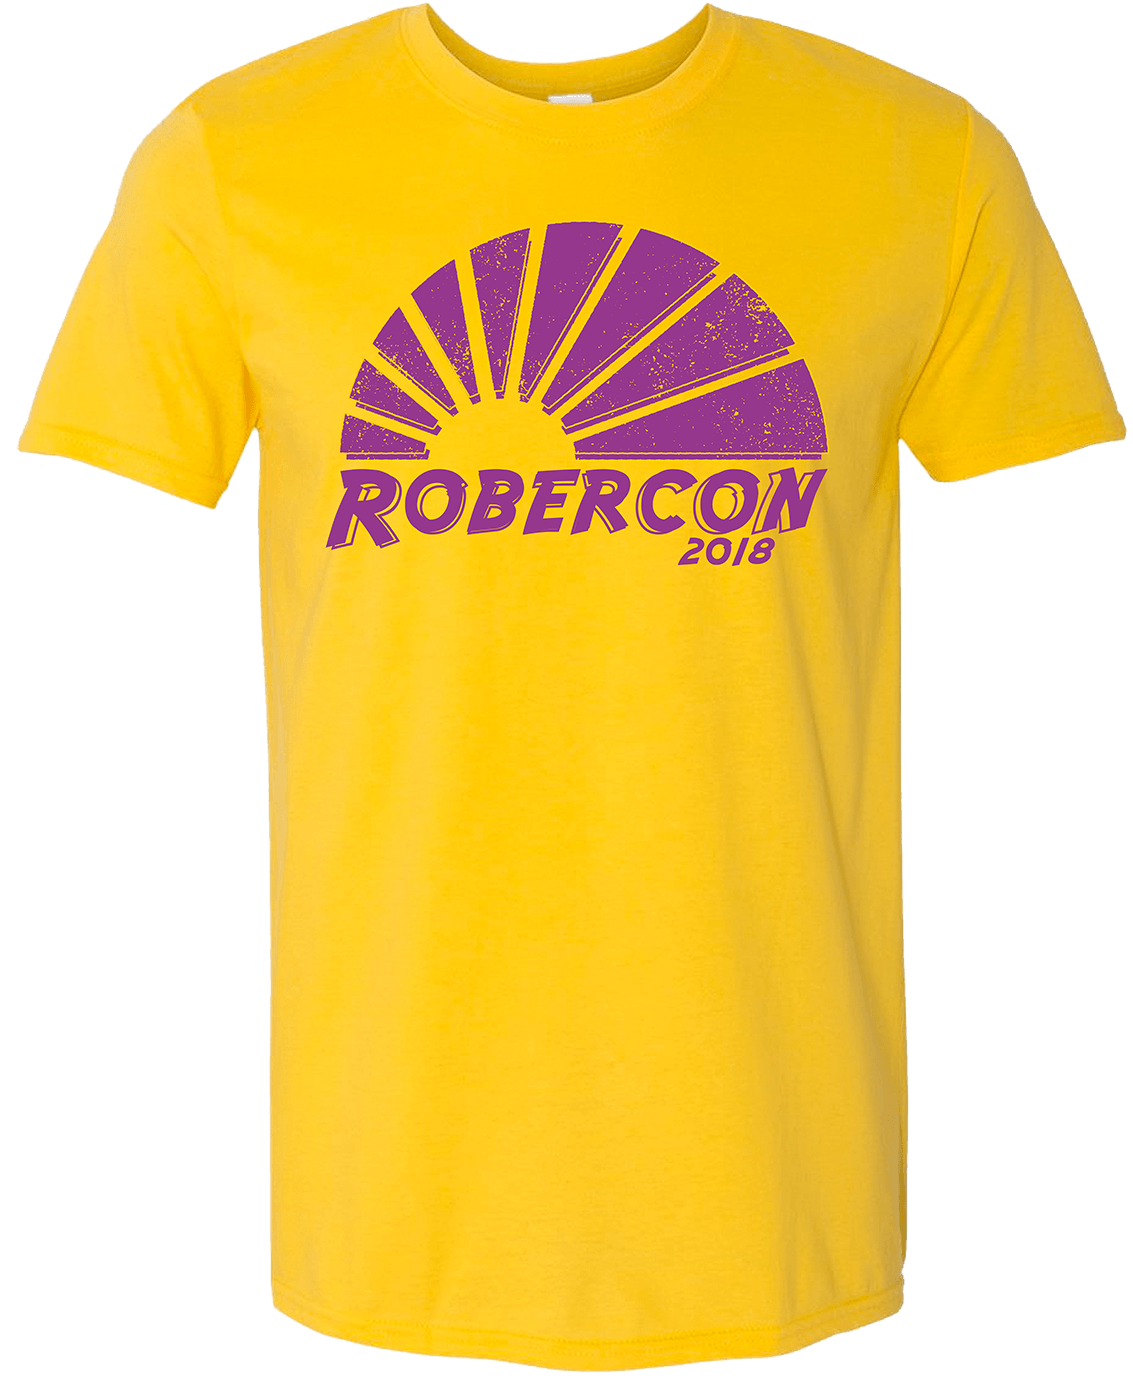 robercon yellow shirt